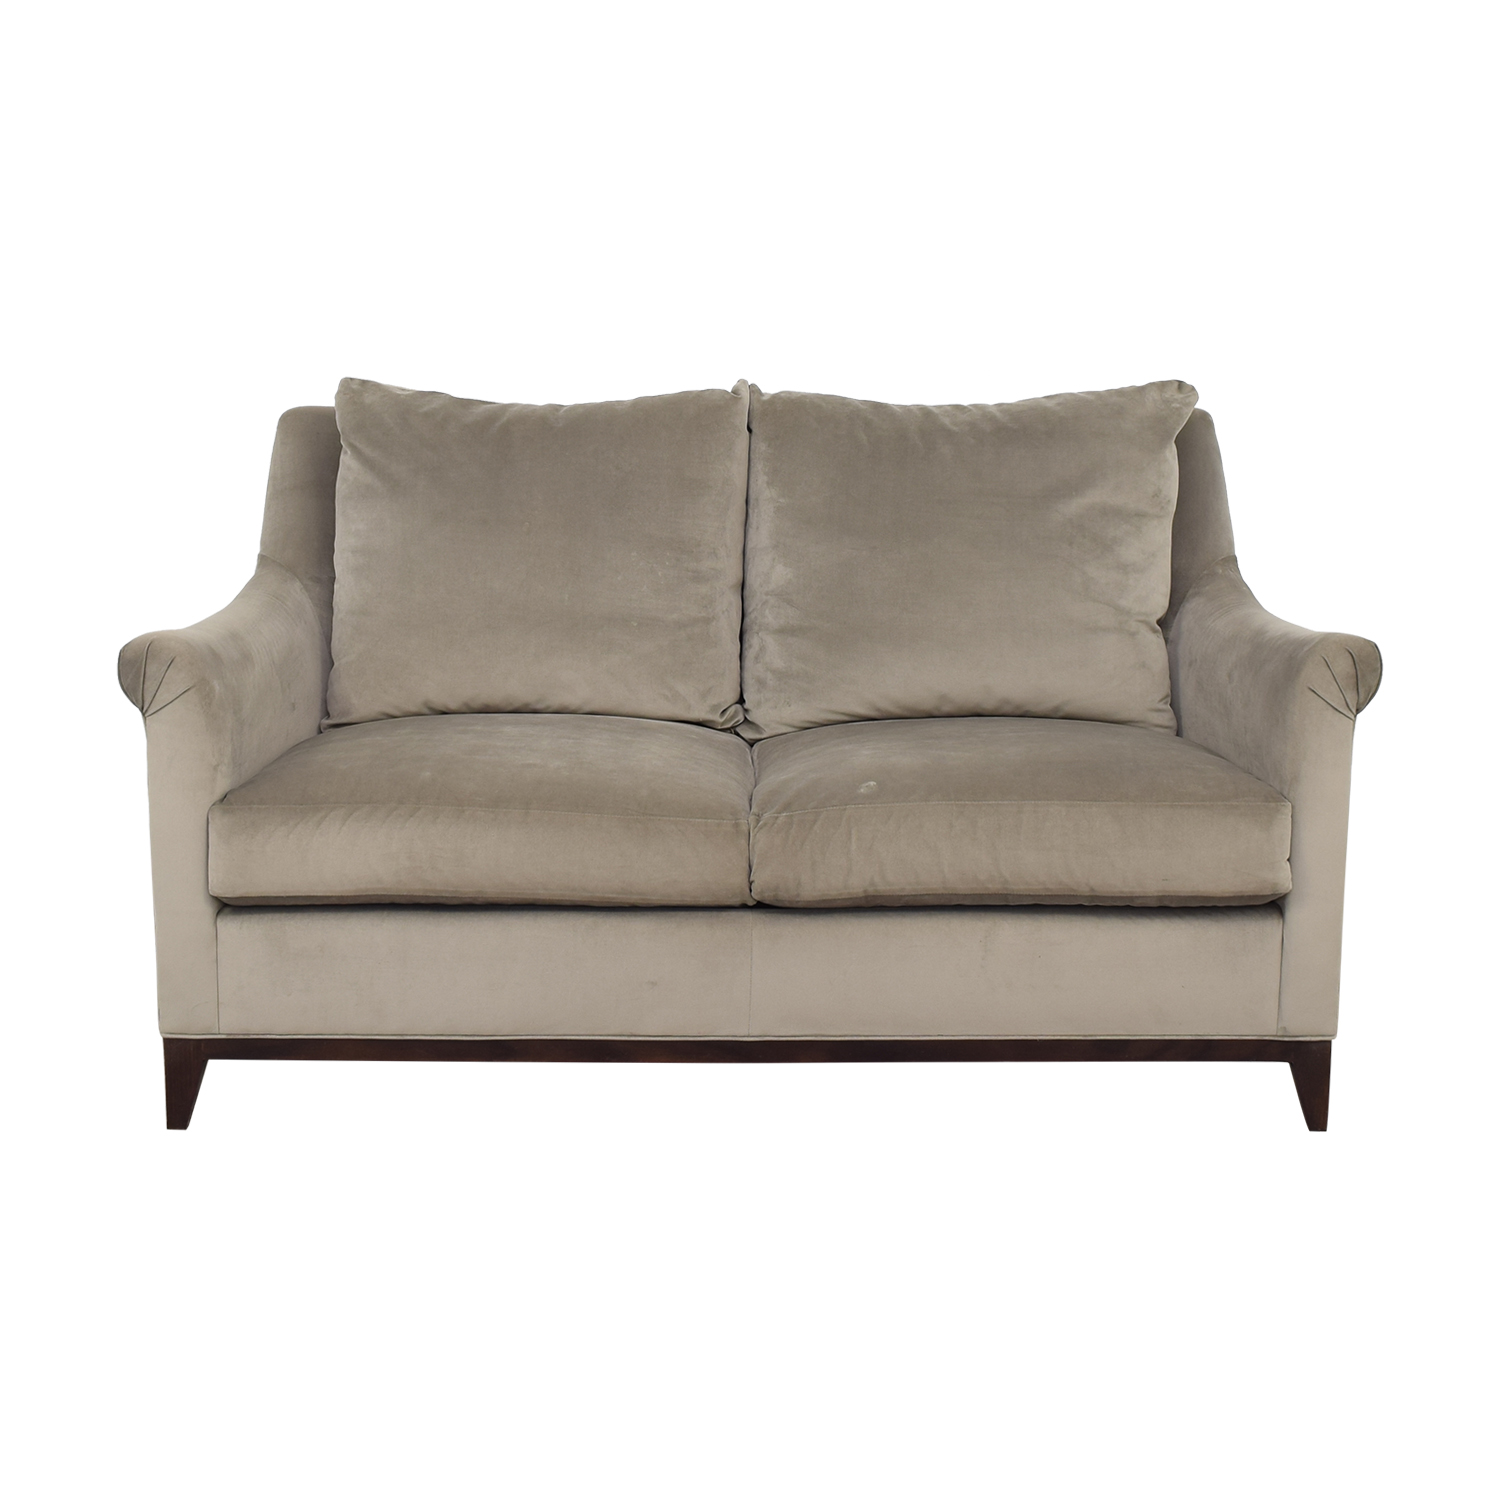 Safavieh Rollarm Two Cushion Loveseat / Chairs